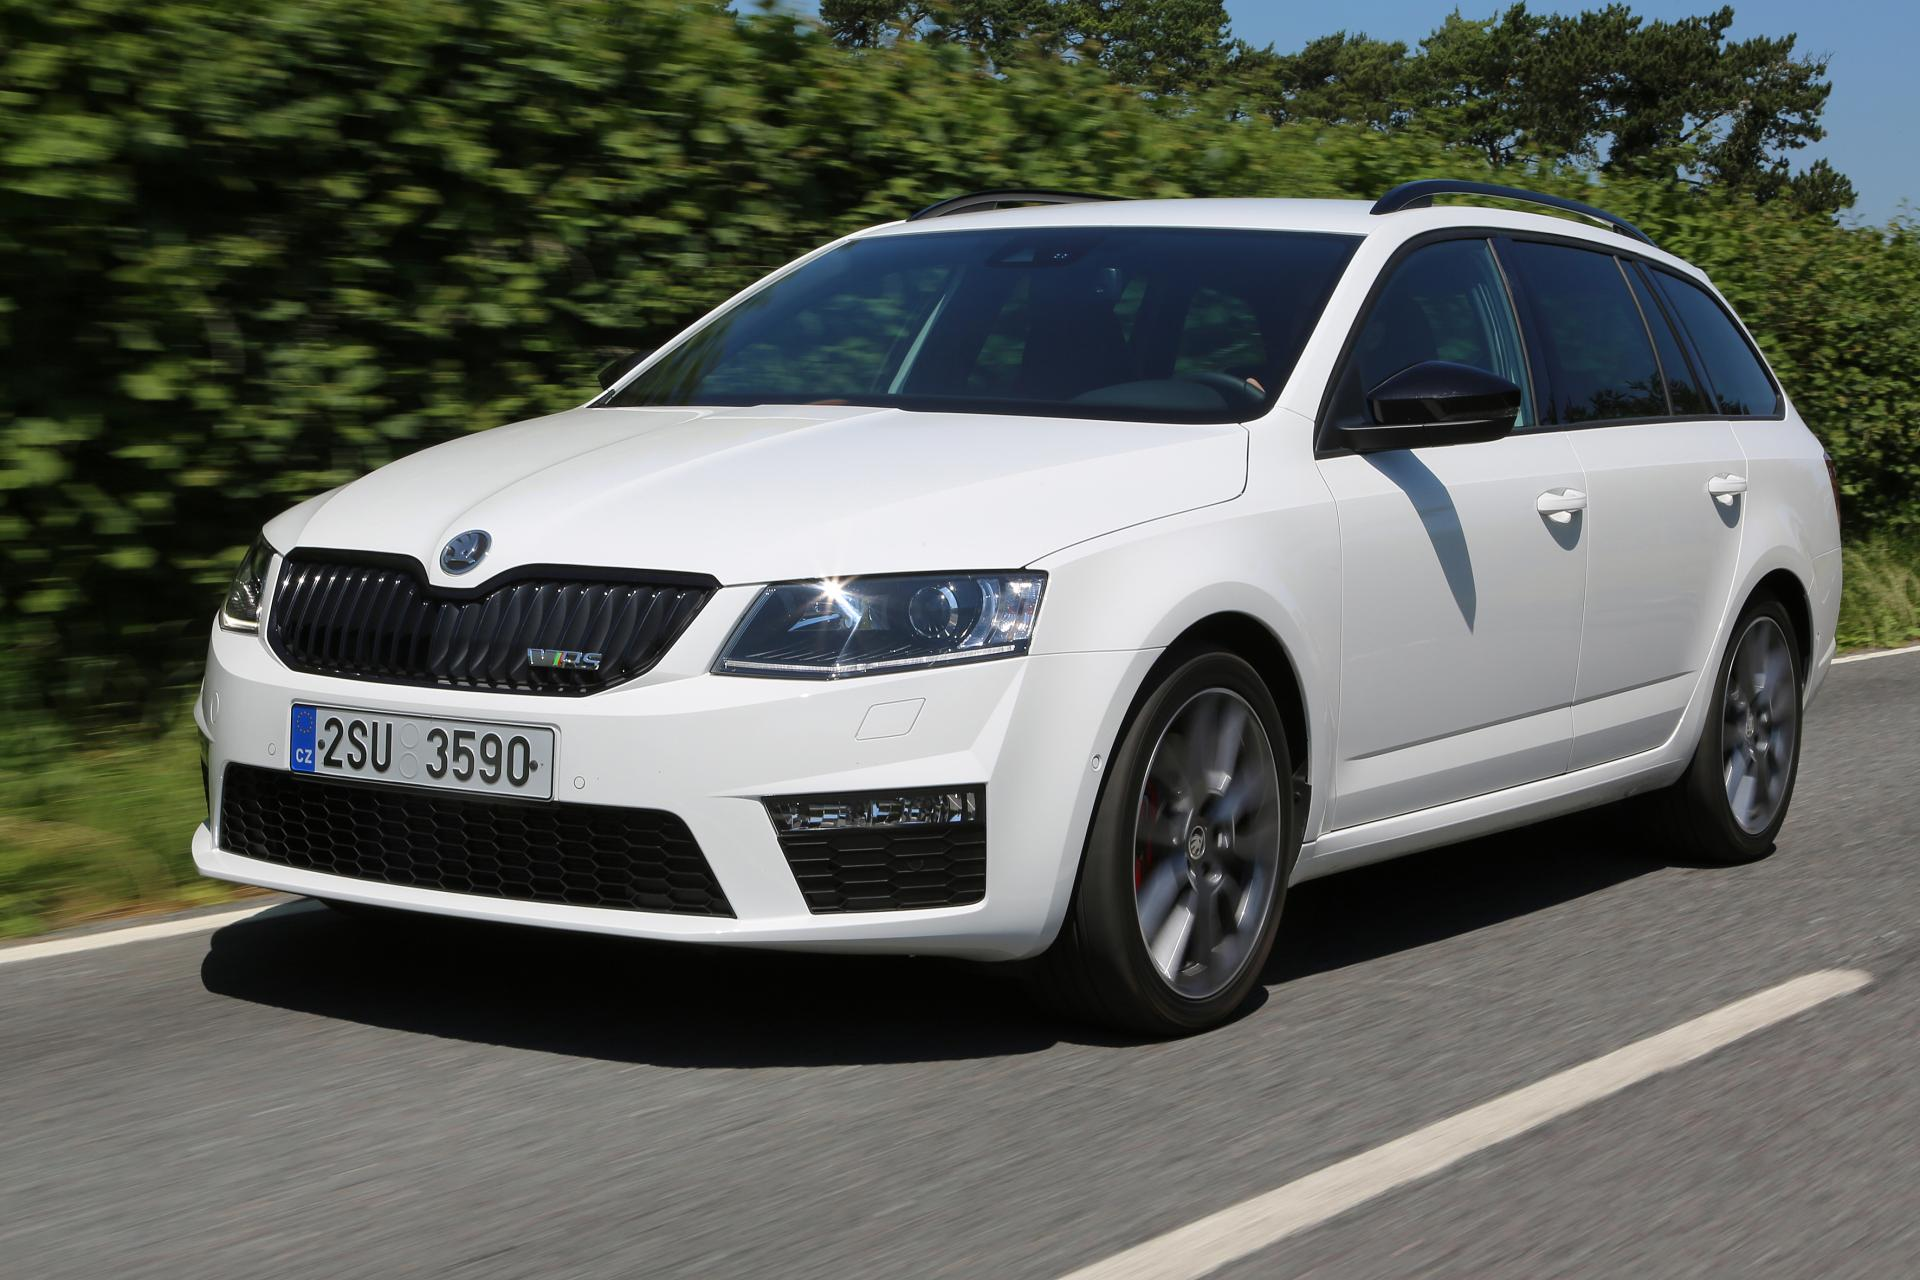 2014 skoda octavia combi rs. Black Bedroom Furniture Sets. Home Design Ideas